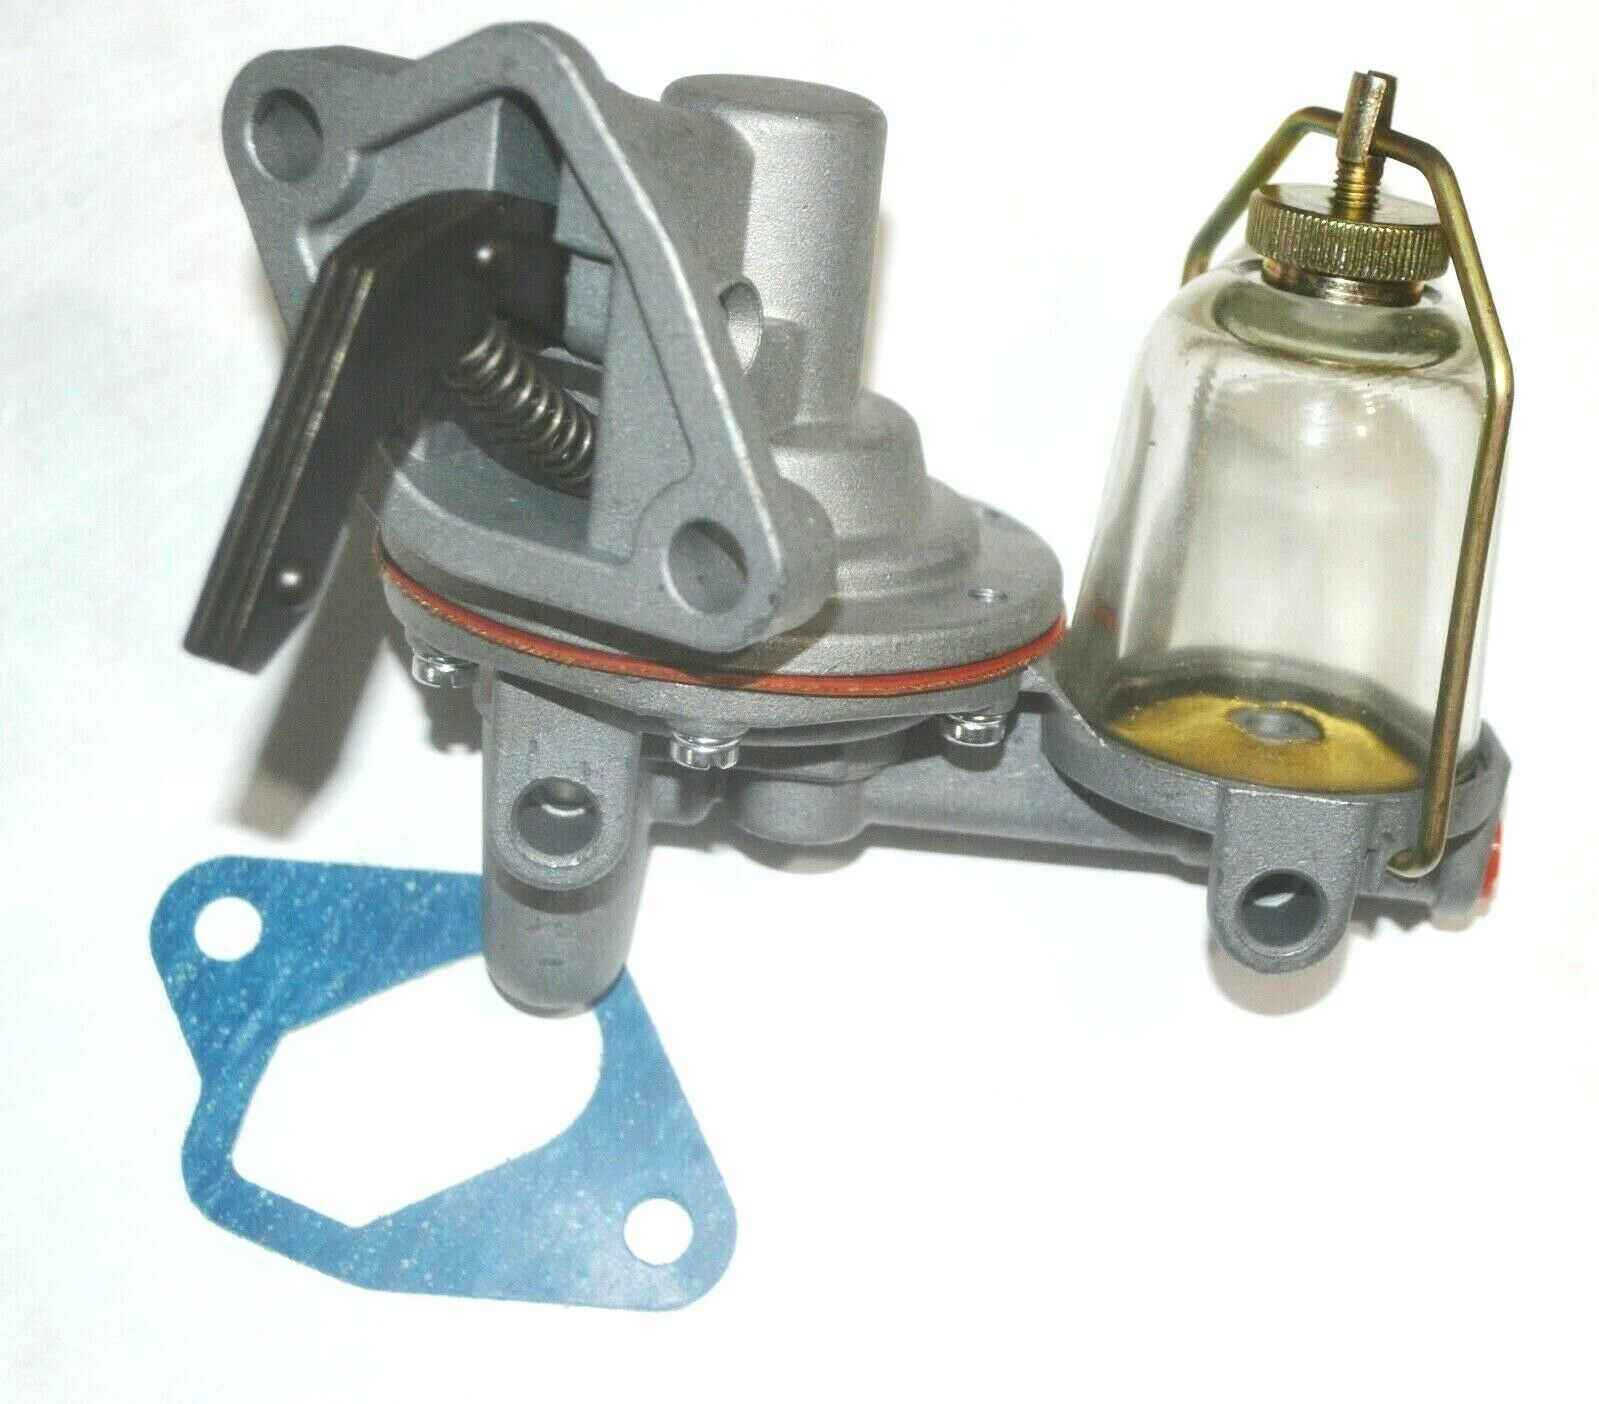 Fuel Pump Dodge Truck 1959 1958 1957 1956 1955 1954 1953 1952 1950 Wiring Harness 218 230 1 Of 9only 3 Available